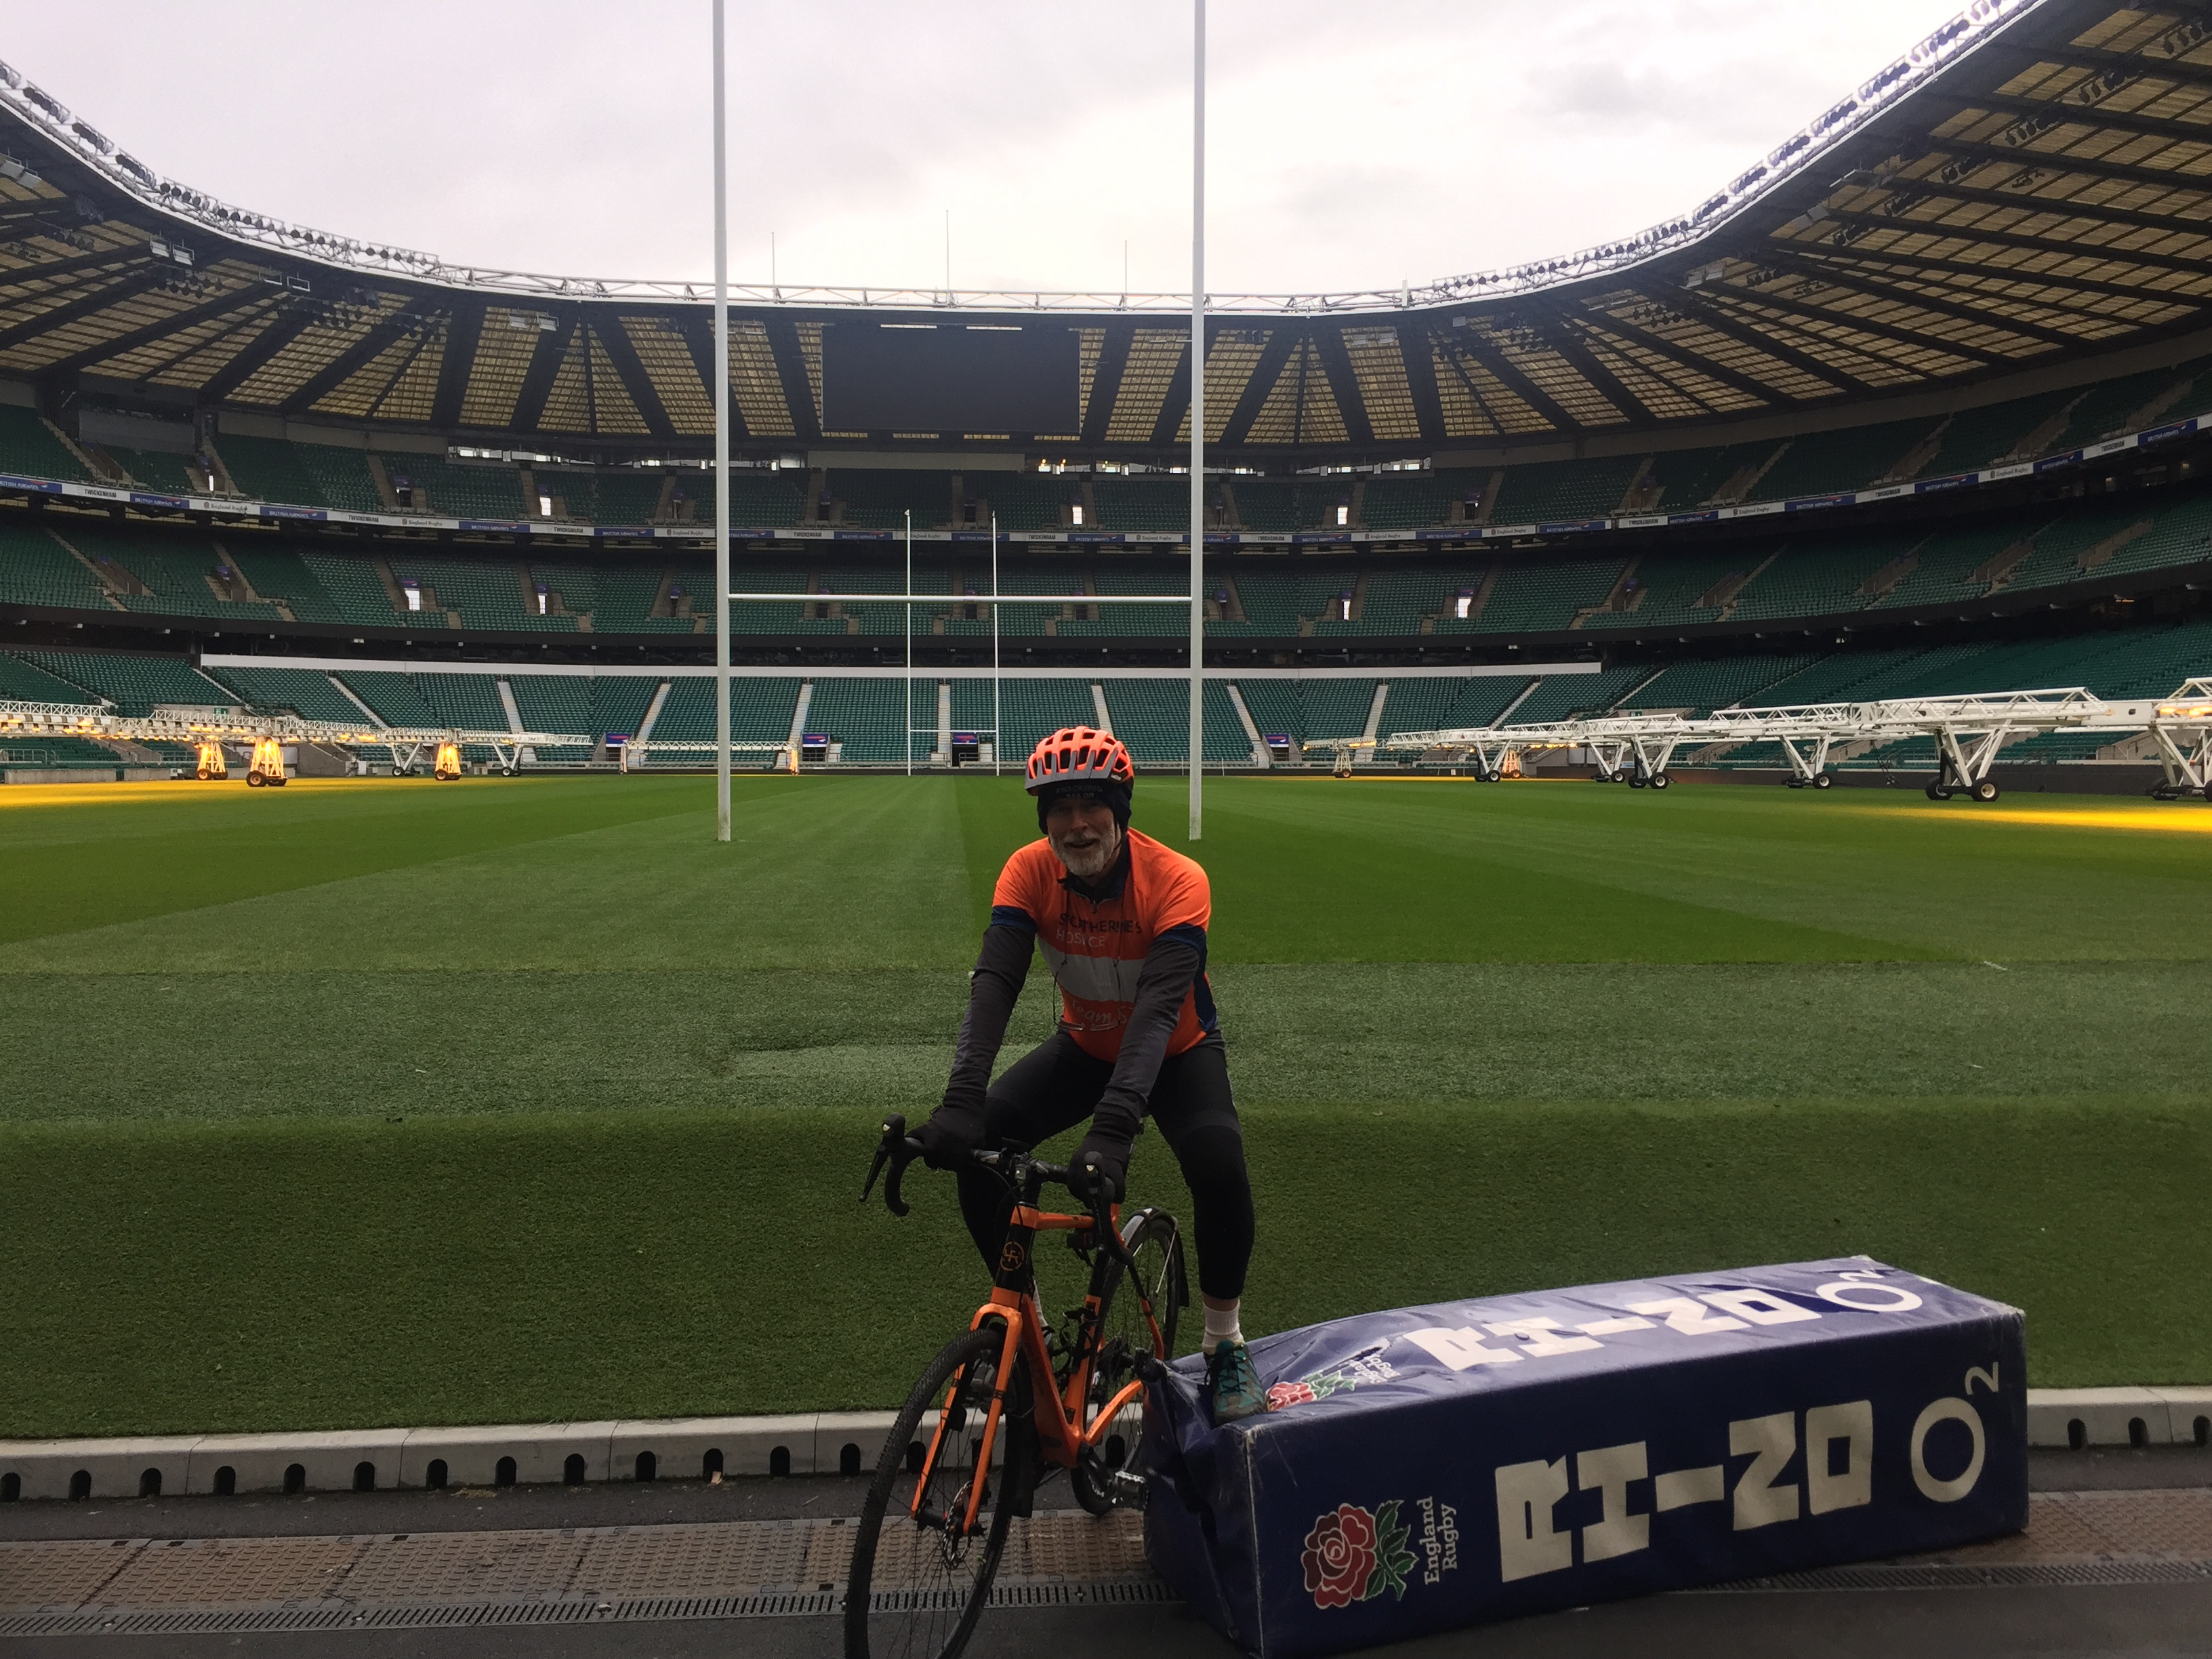 Patrick McIntosh on his bike at Twickenham